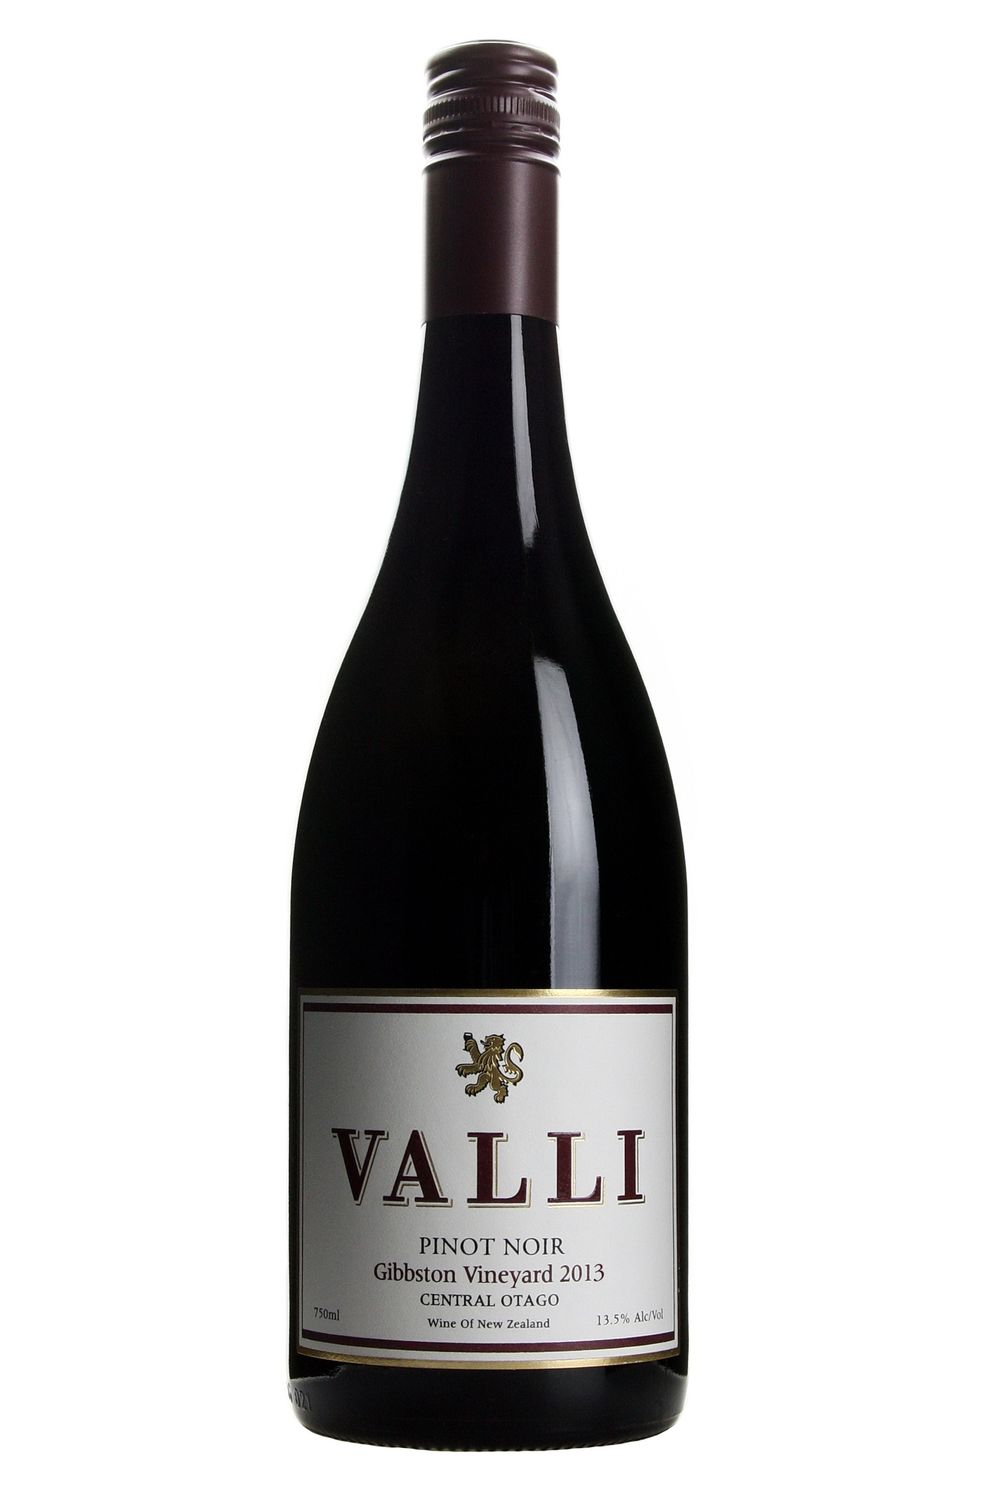 Valli Pinot Noir 2013 Gibbston